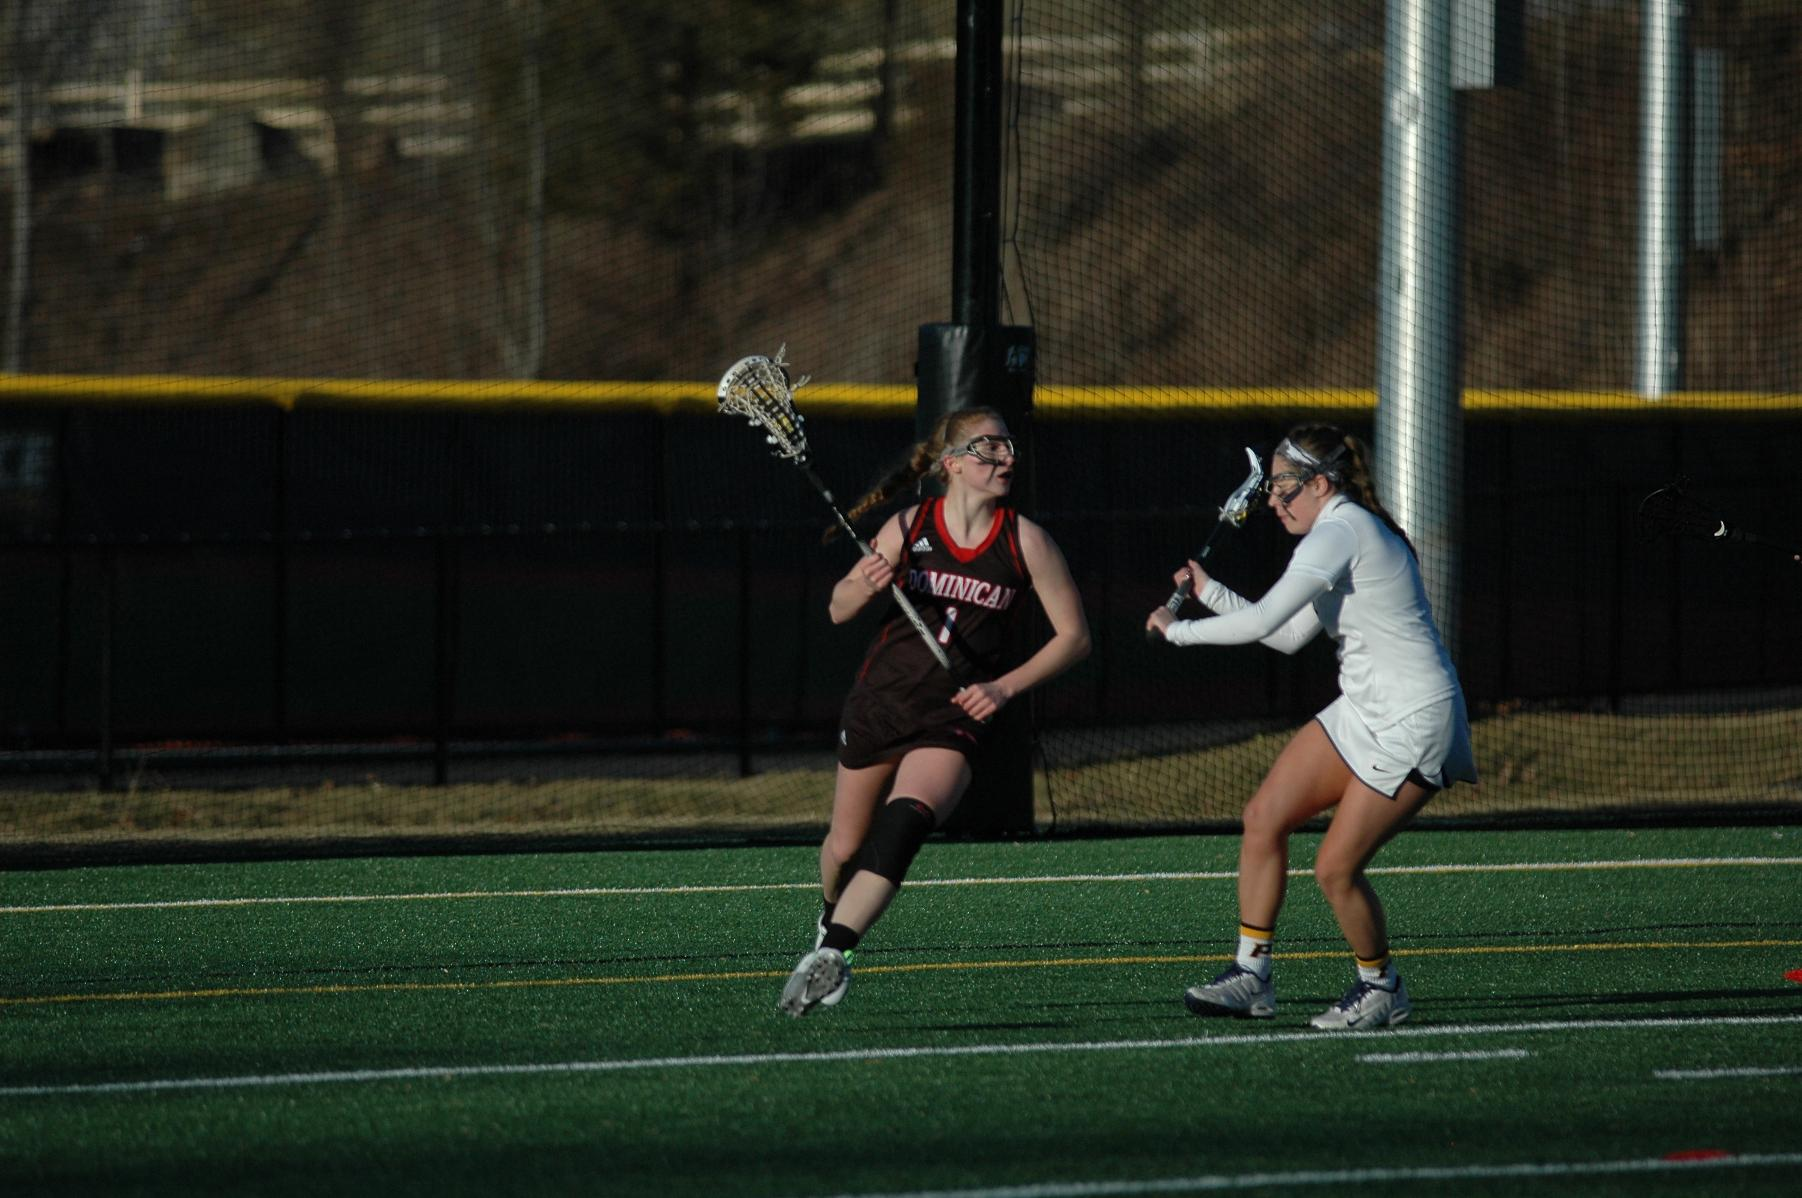 WOMEN'S LACROSSE OUTLASTS WILDCATS